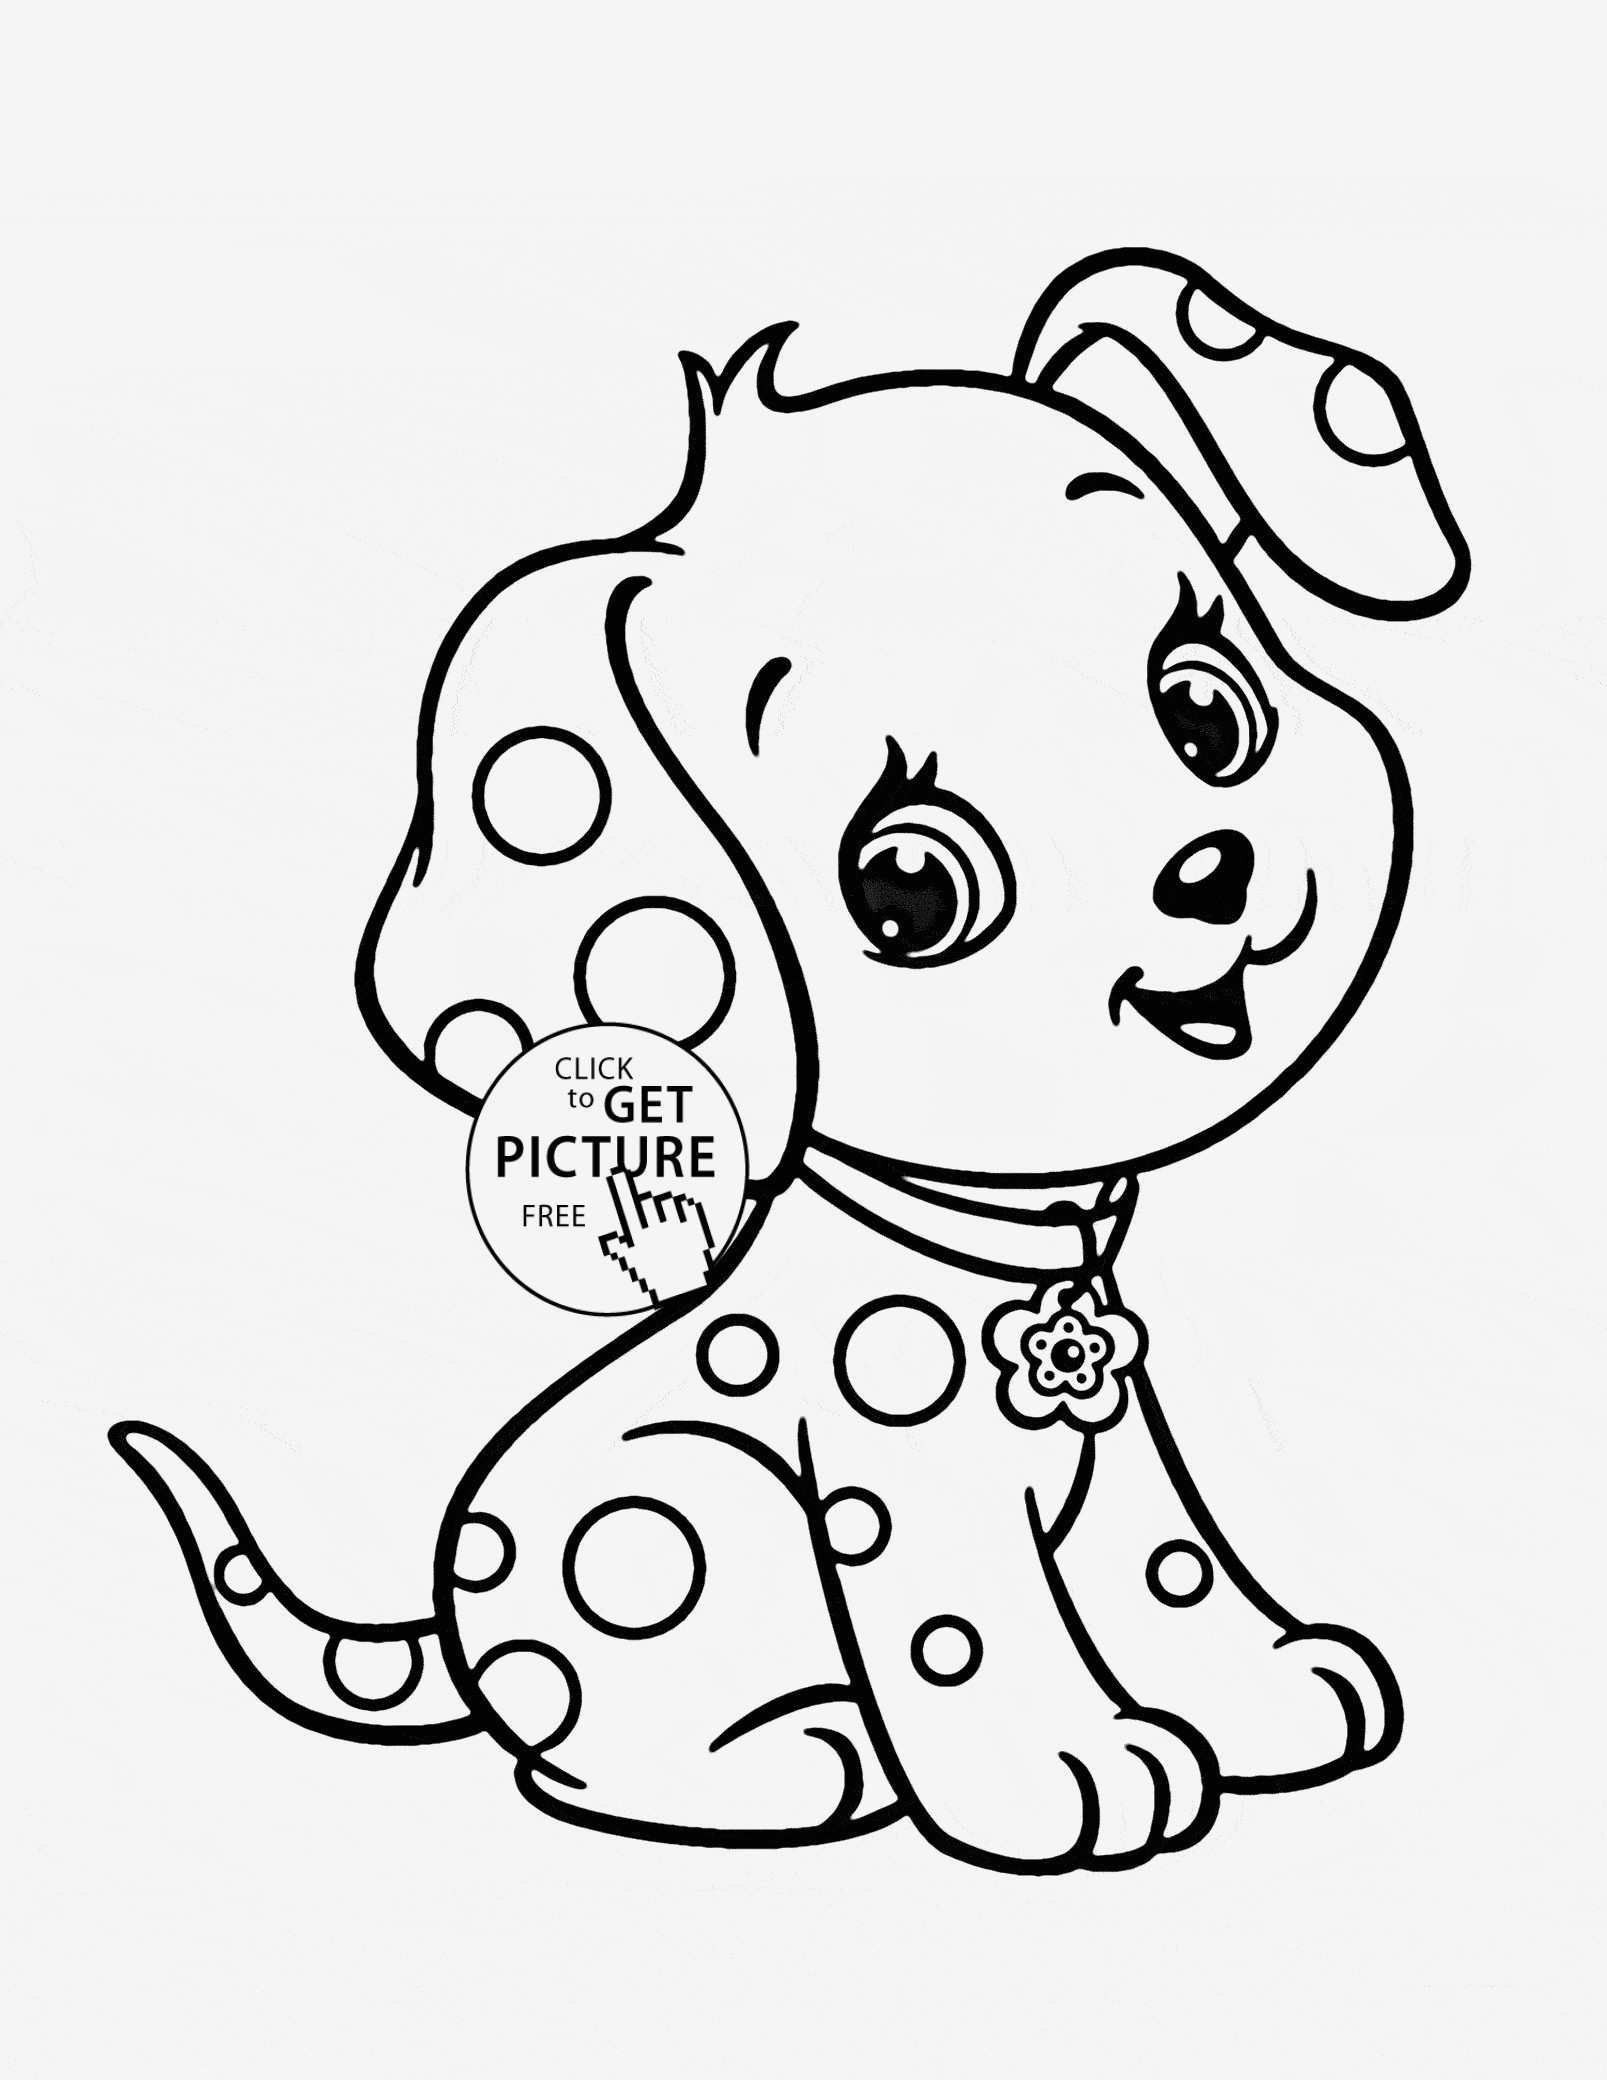 Animal Mandala Coloring Pages Inspirational Hard Dog Coloring Pages Lovely Free Printable Anima Unicorn Coloring Pages Puppy Coloring Pages Cute Coloring Pages